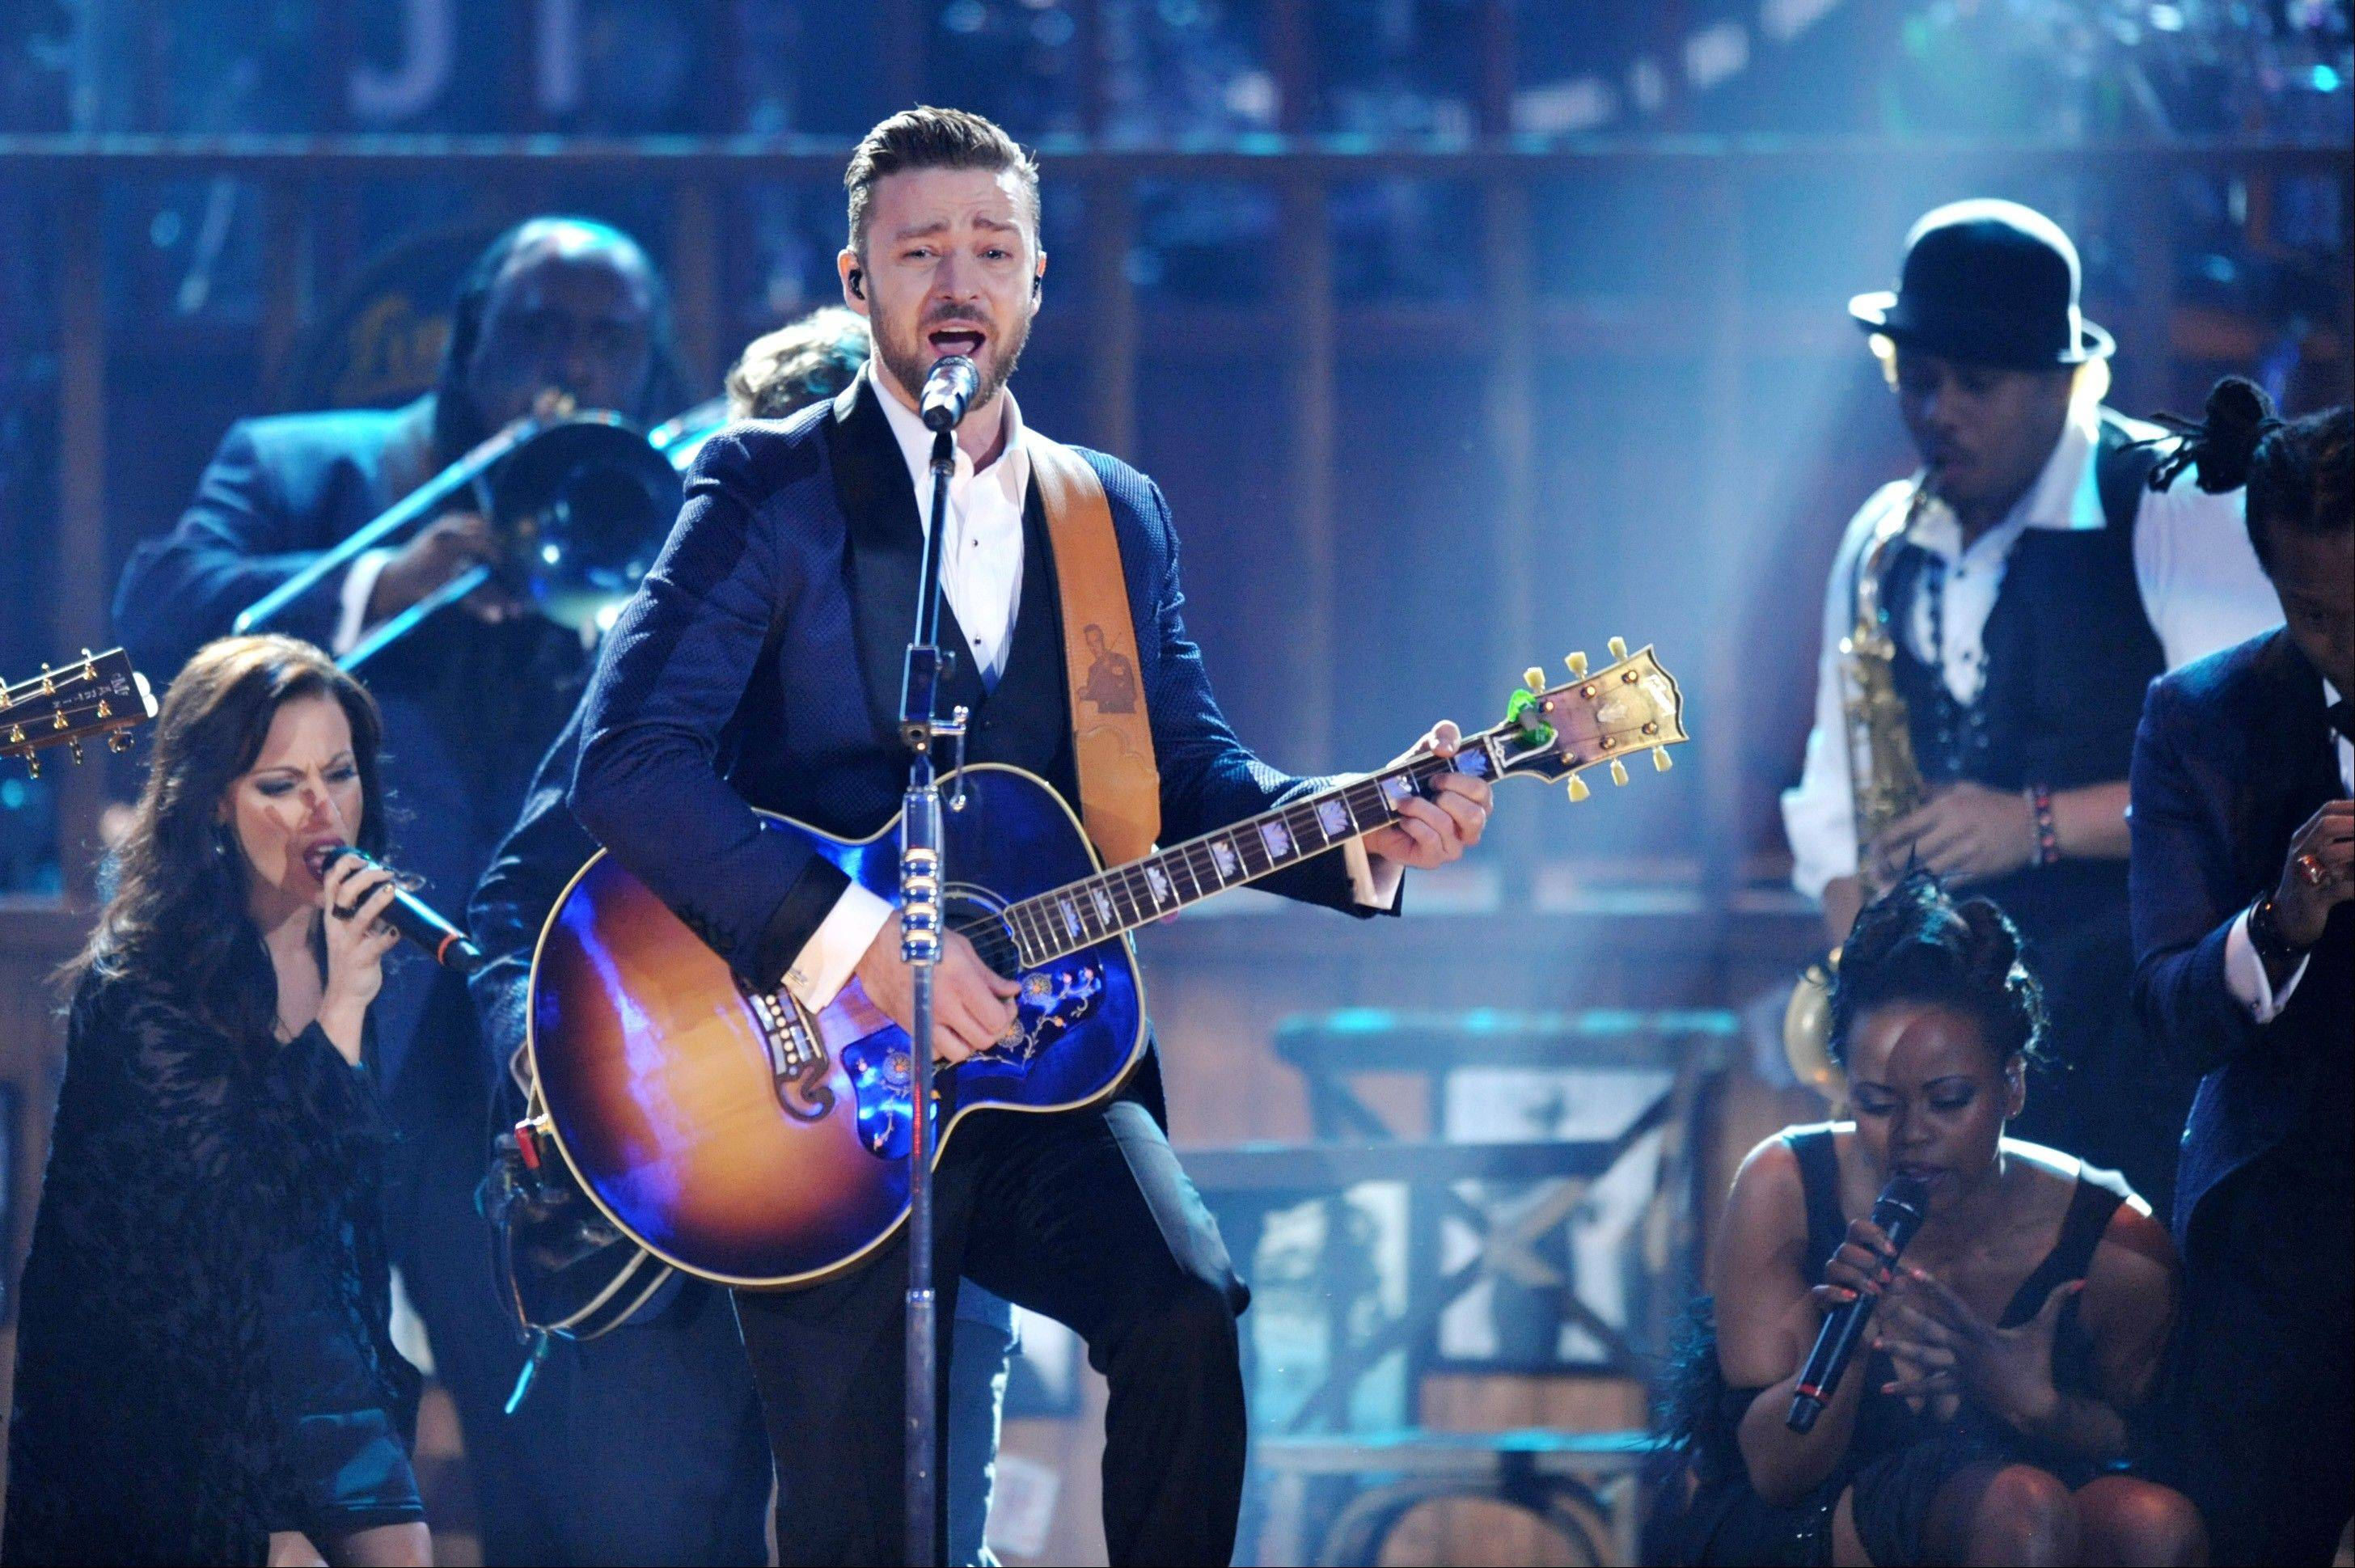 Justin Timberlake, center, performs on stage at the American Music Awards at the Nokia Theatre L.A. Live in Los Angeles. Though Timberlake�s �The 20/20 Experience� is a best-seller, he was largely shut out of the top Grammy categories.